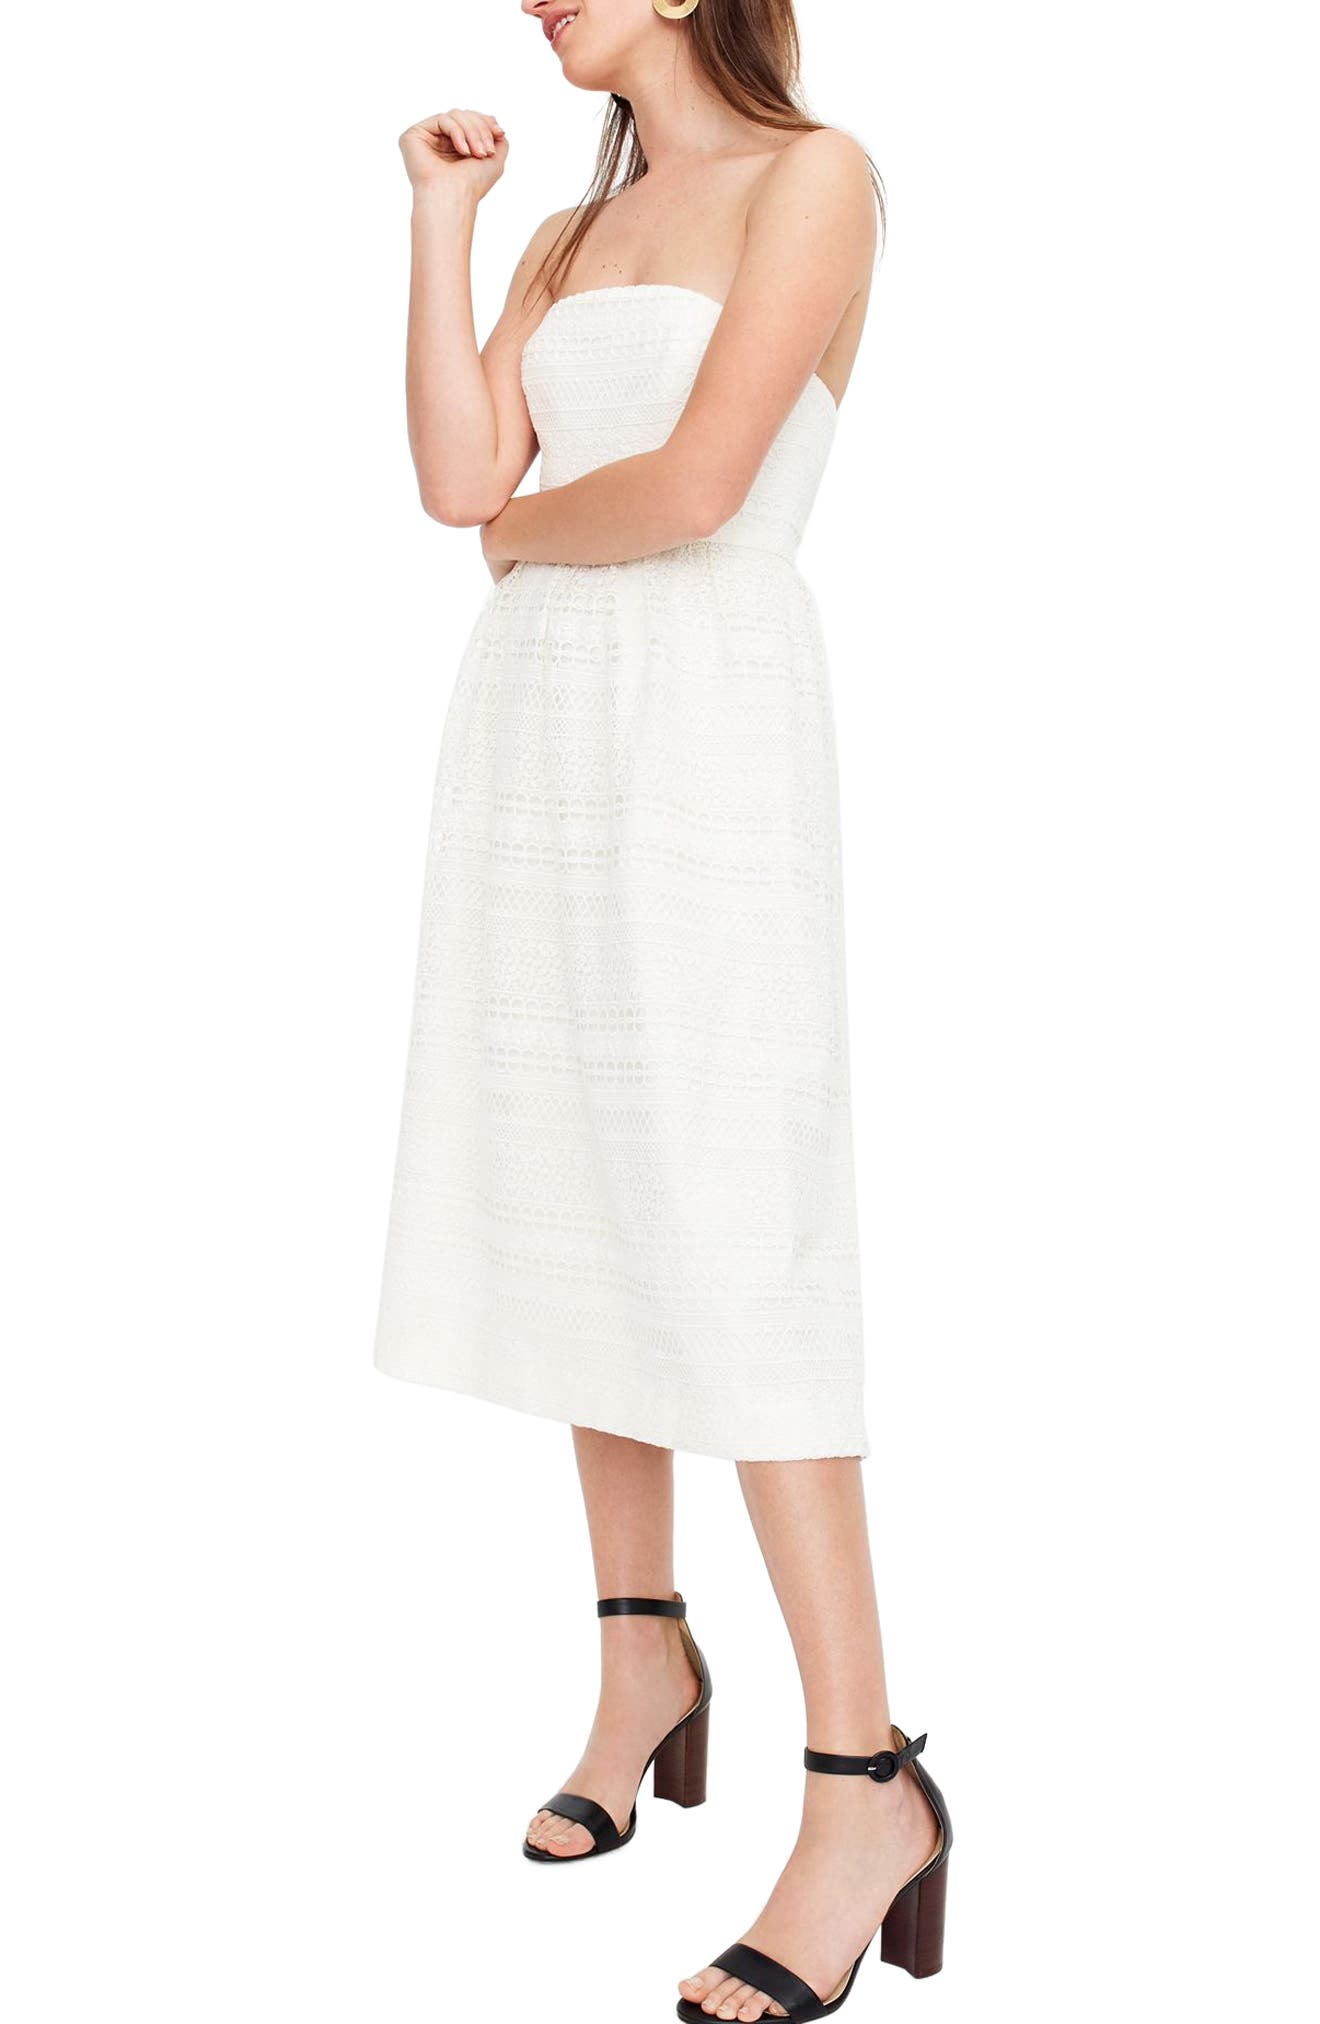 J.Crew Strapless Lace Dress,                             Main thumbnail 1, color,                             Ivory